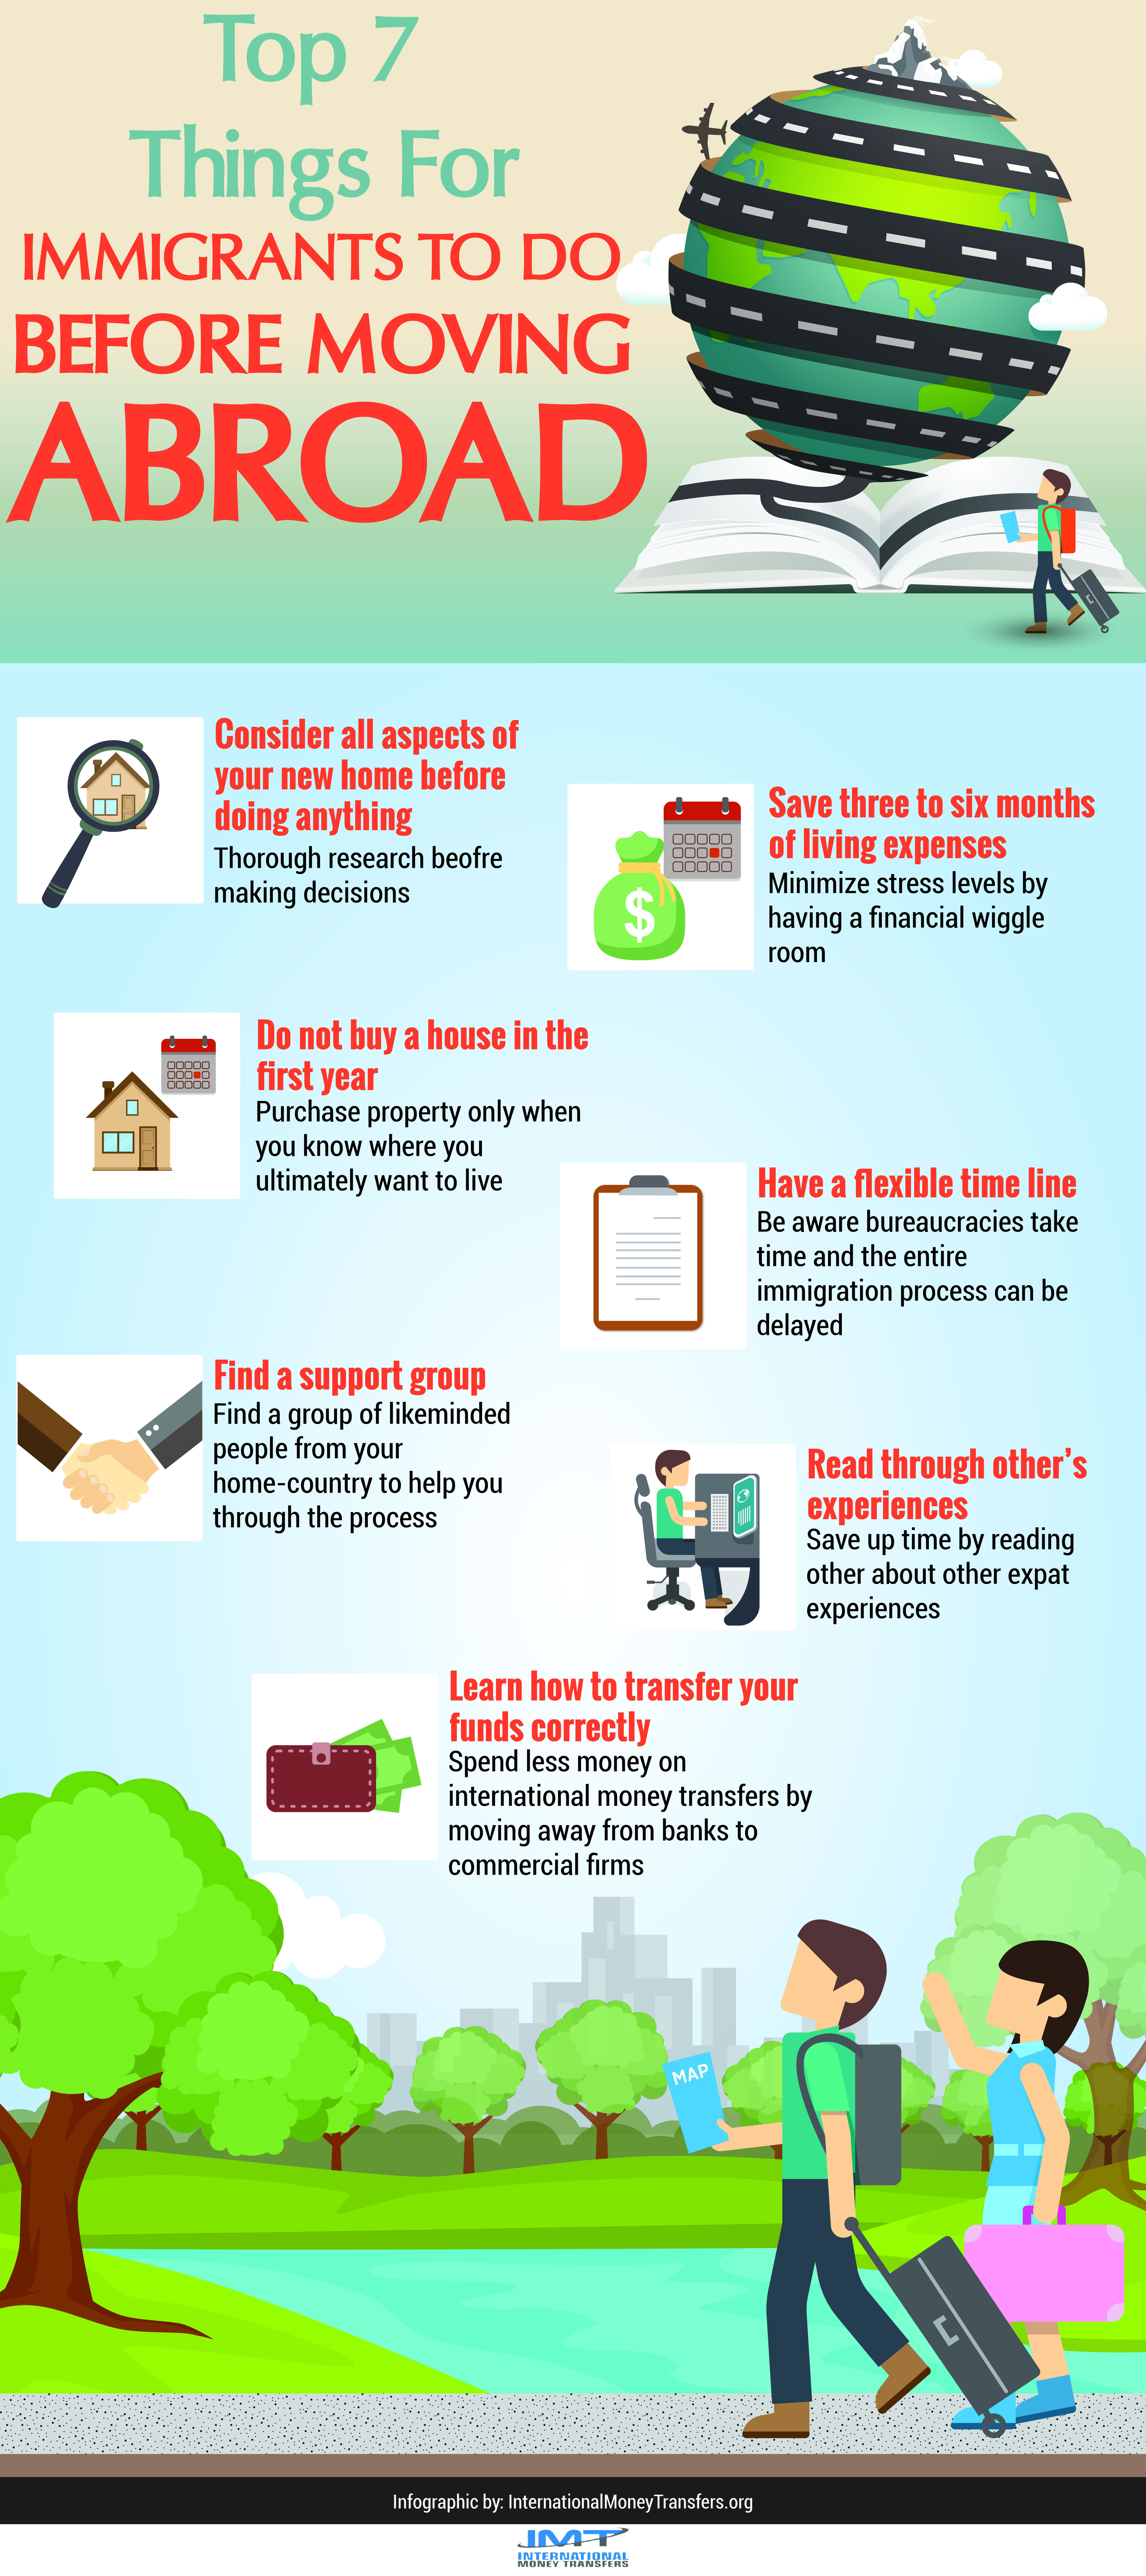 Top_10_Things_For_Immigrants_To_Do_Before_Moving_Abroad